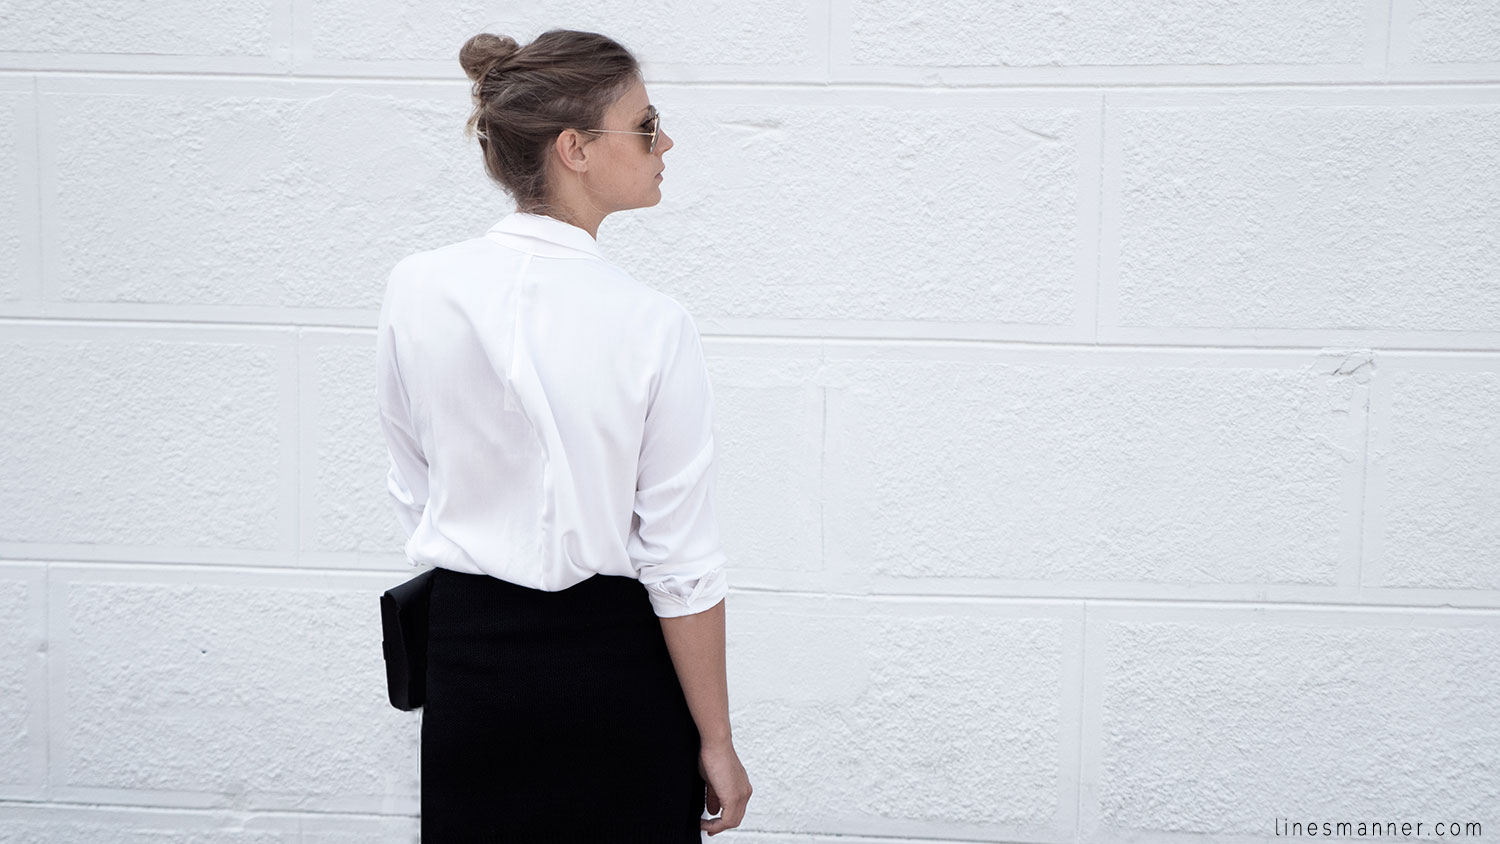 Lines-Manner-Whiteout-Fashion-Minimal-Clean-Fresh-Brigthly-All_White-Monochrome-Immaculate-Trend-Style-Sleek-Slouchy-Details-White_Shirt-Transeasonal-Dressing-Outfit-14